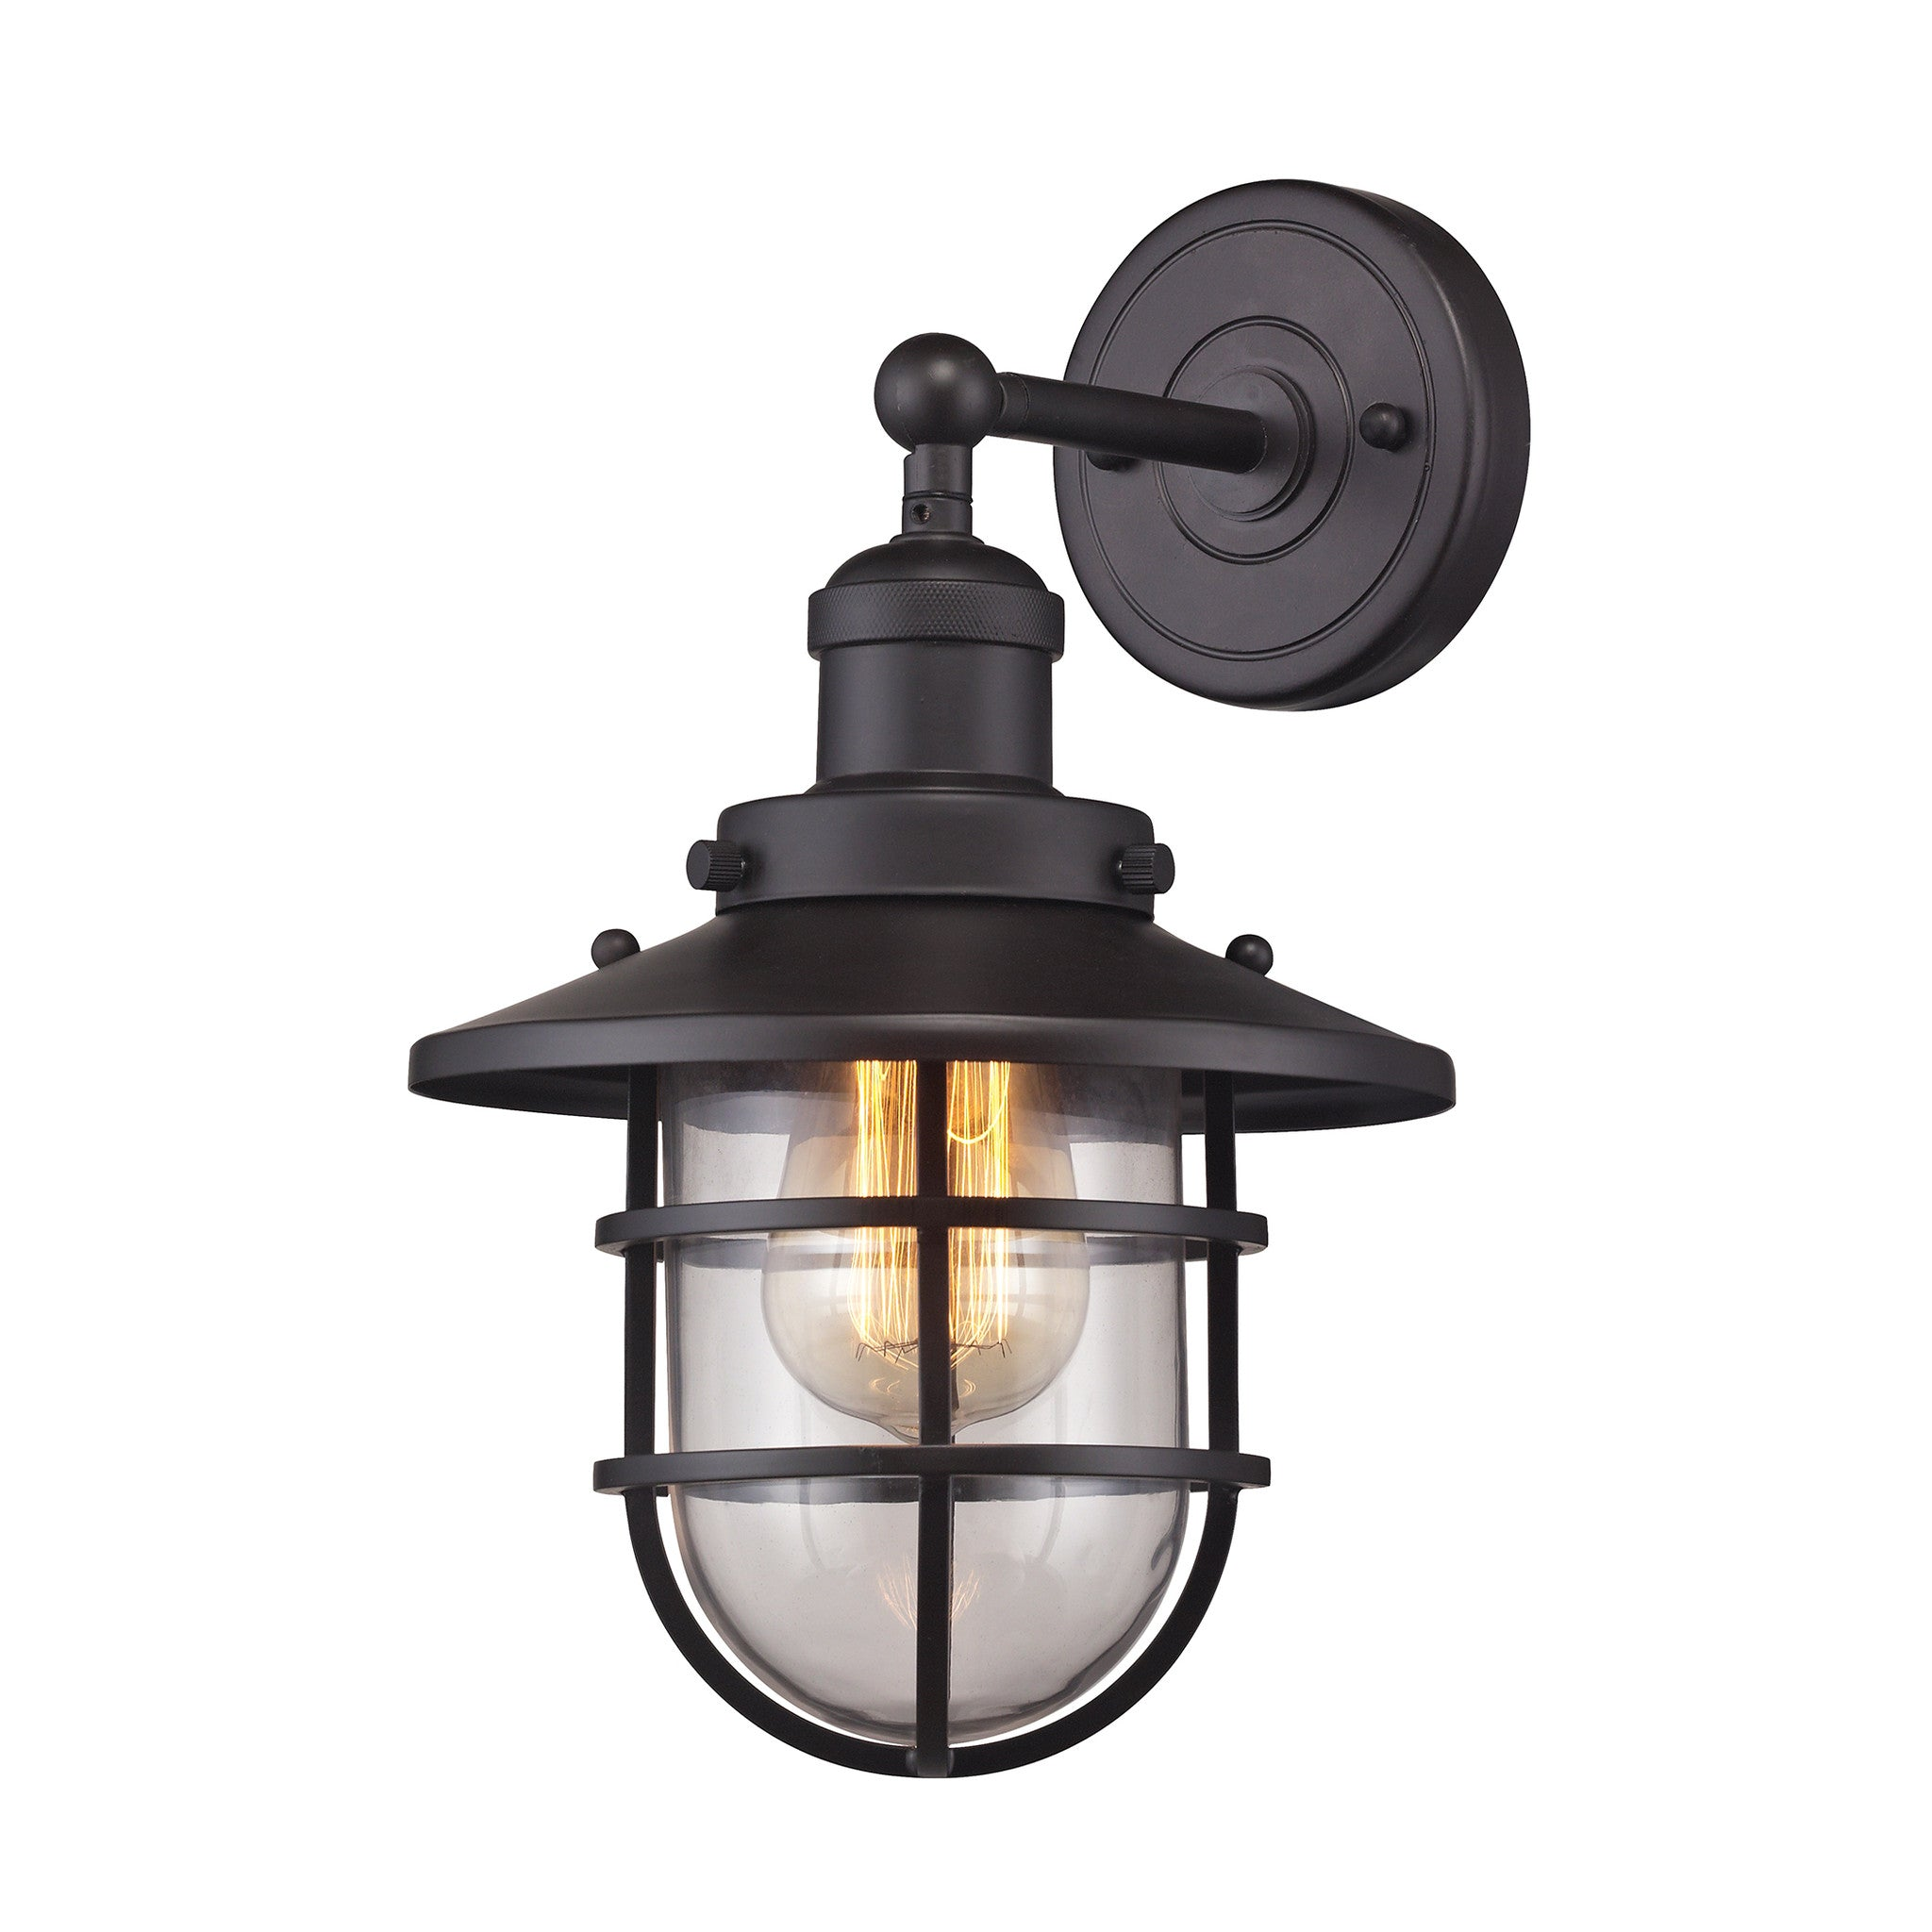 Seaport 1 Light Wall Sconce in Oil Rubbed Bronze by Elk Lighting 66366-1